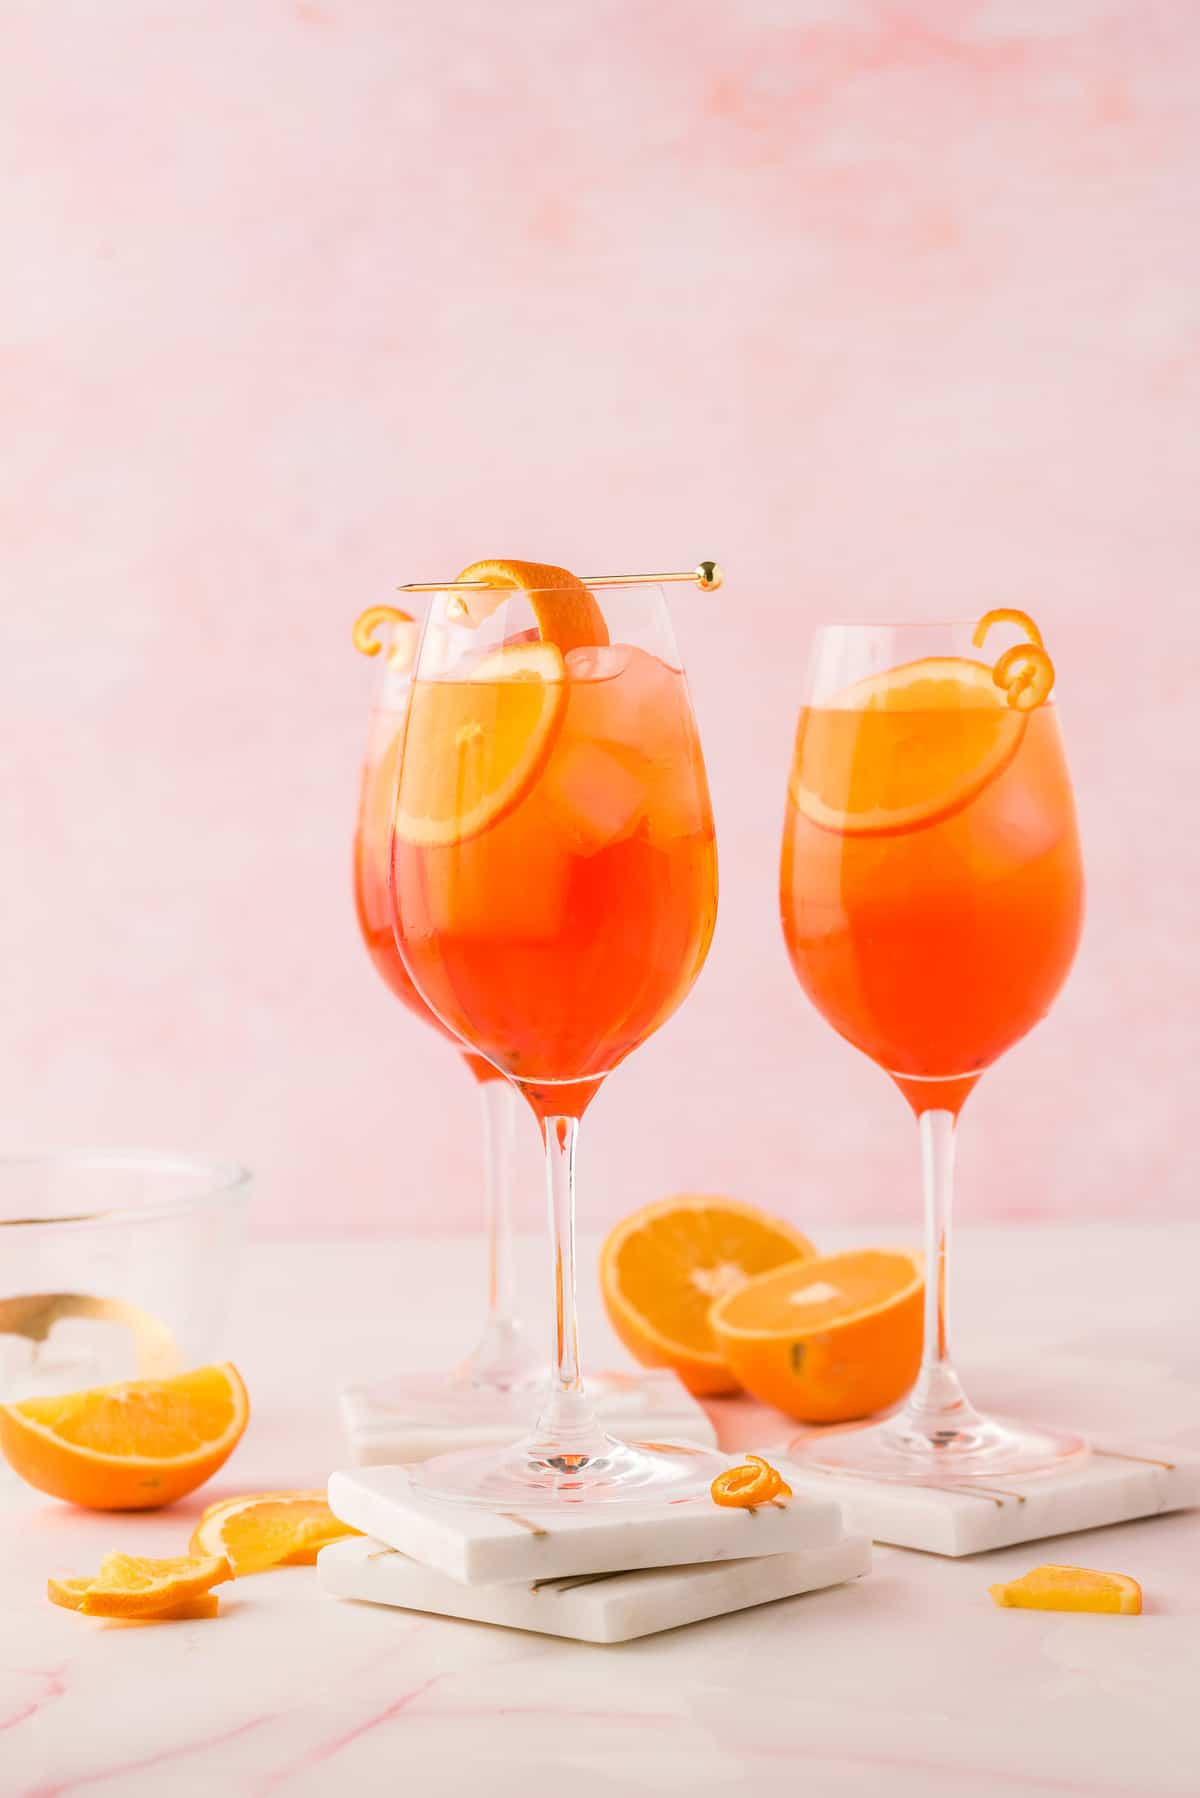 Three wine glasses filled with an orange drink and orange slices.